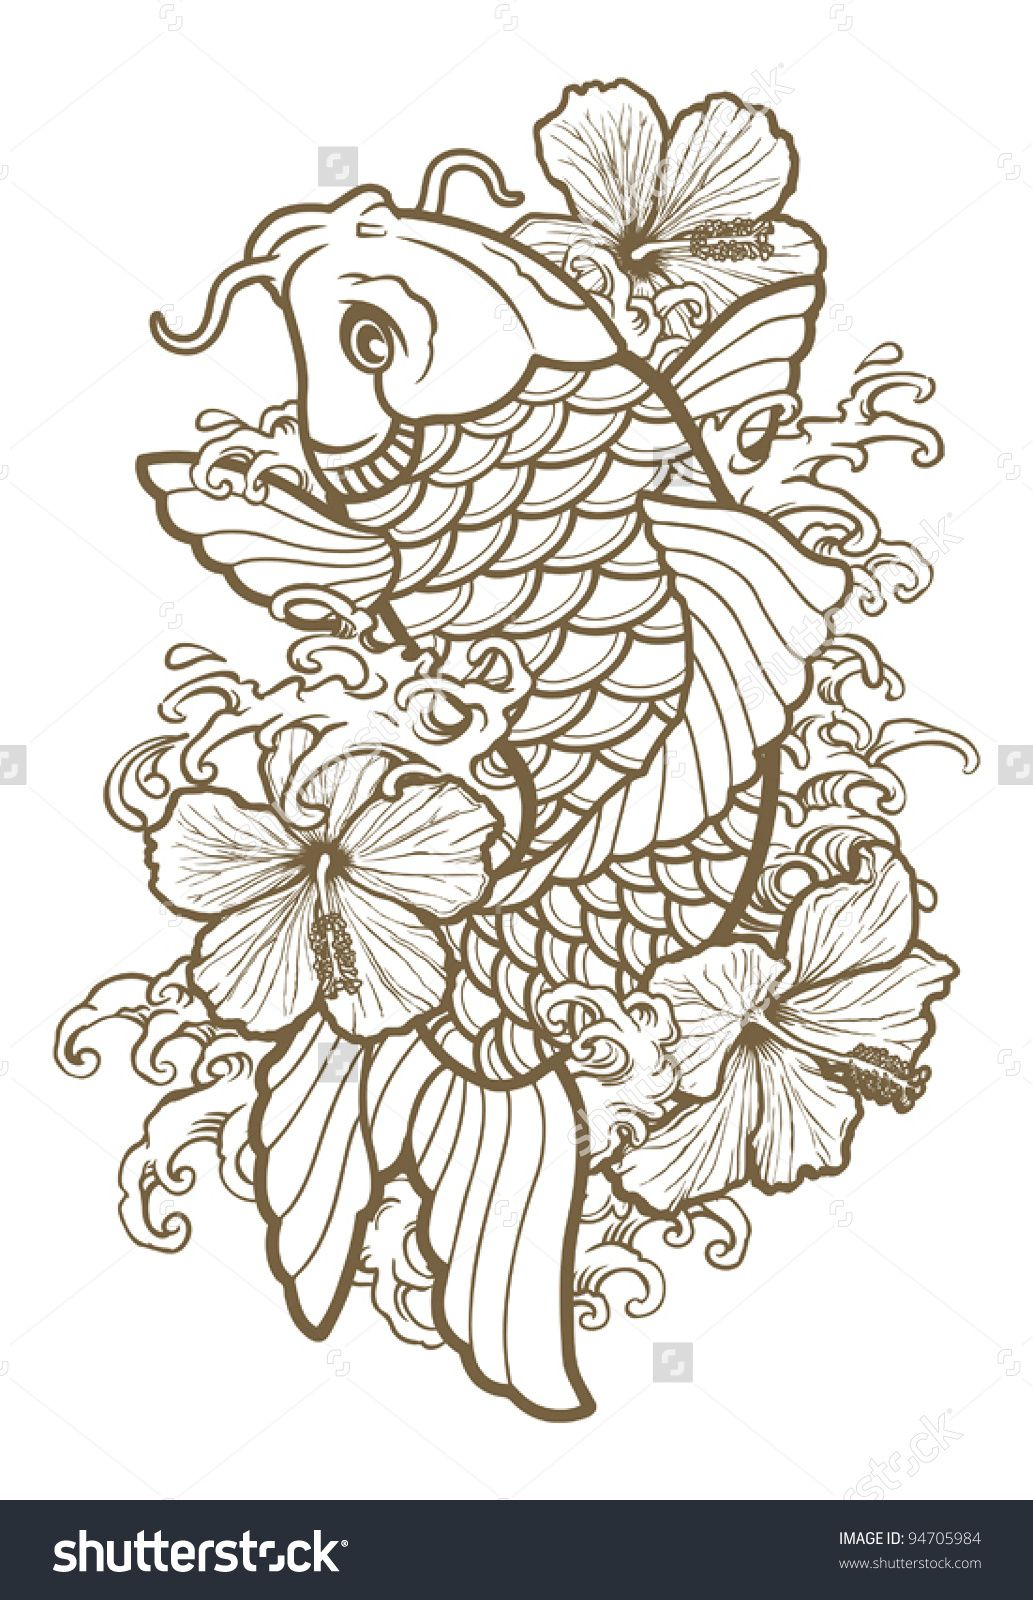 Peces koi buscar con google tattoo pinterest koi tattoo and japanese koi fish tattoos are frequently exhibited using a great mix of izmirmasajfo